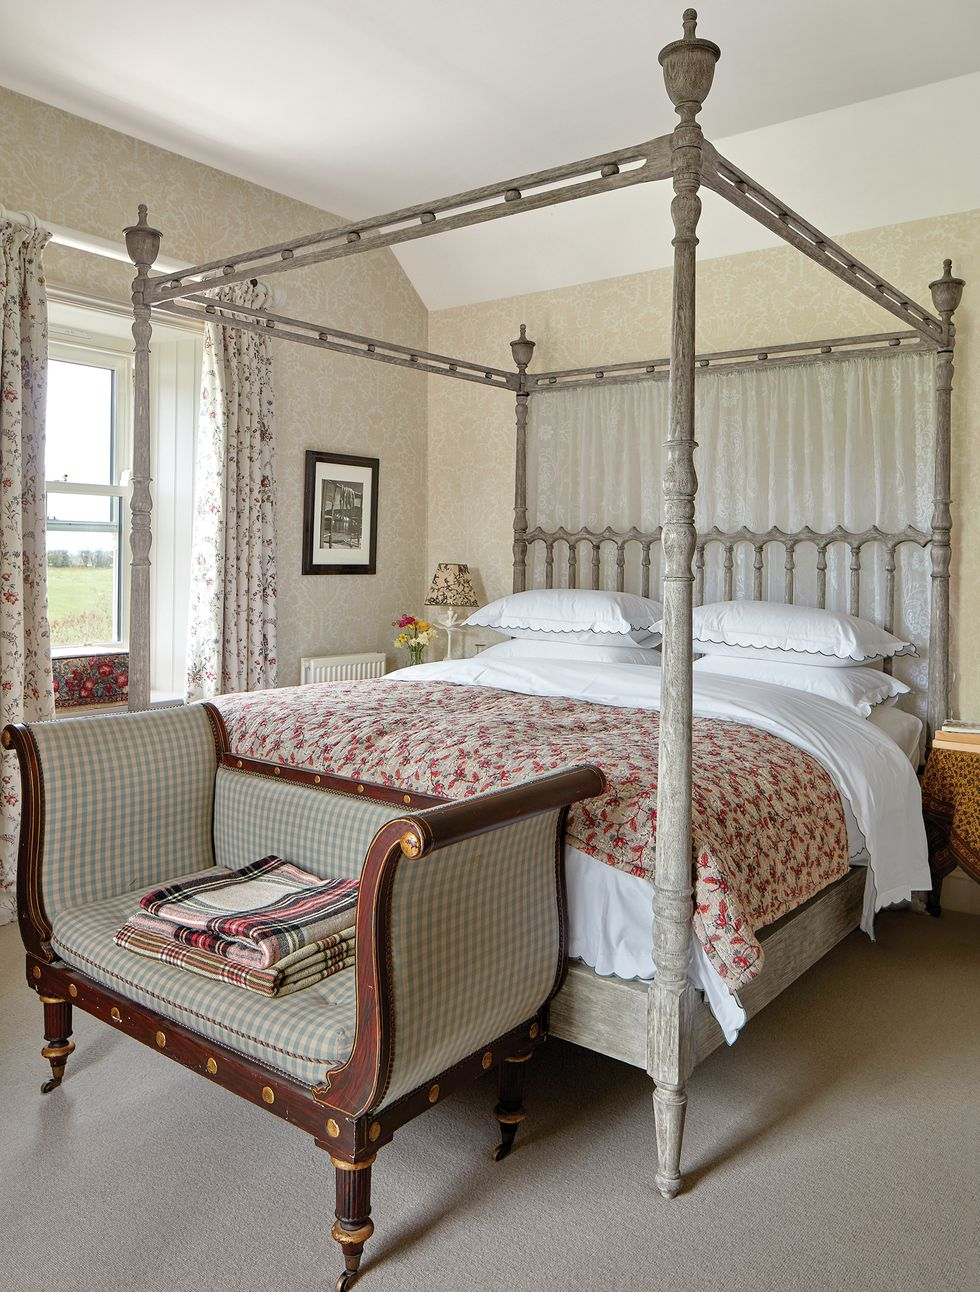 Picture of: Rita Konig Country House England Farmhouse England Master Bedroom Four Poster William Yeoward Bed Curtains Nicole Fabre Designs Elle Decor June 2019 Katie Considers